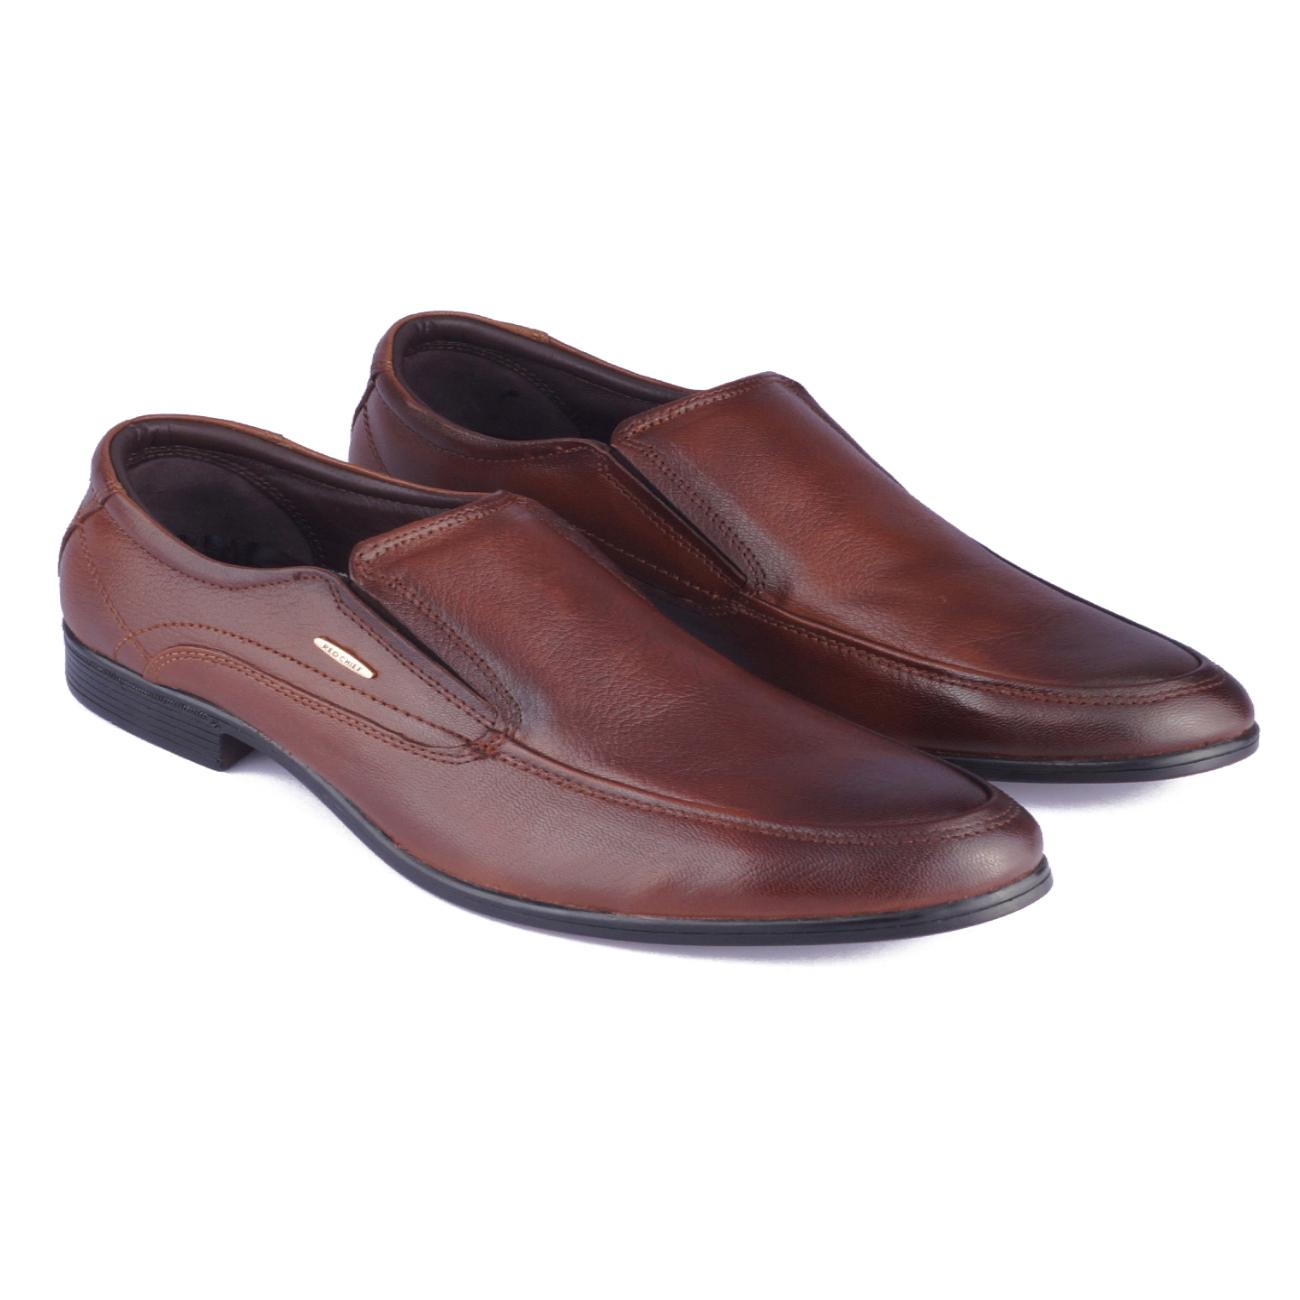 tan leather slip-on formal shoes rubber sole